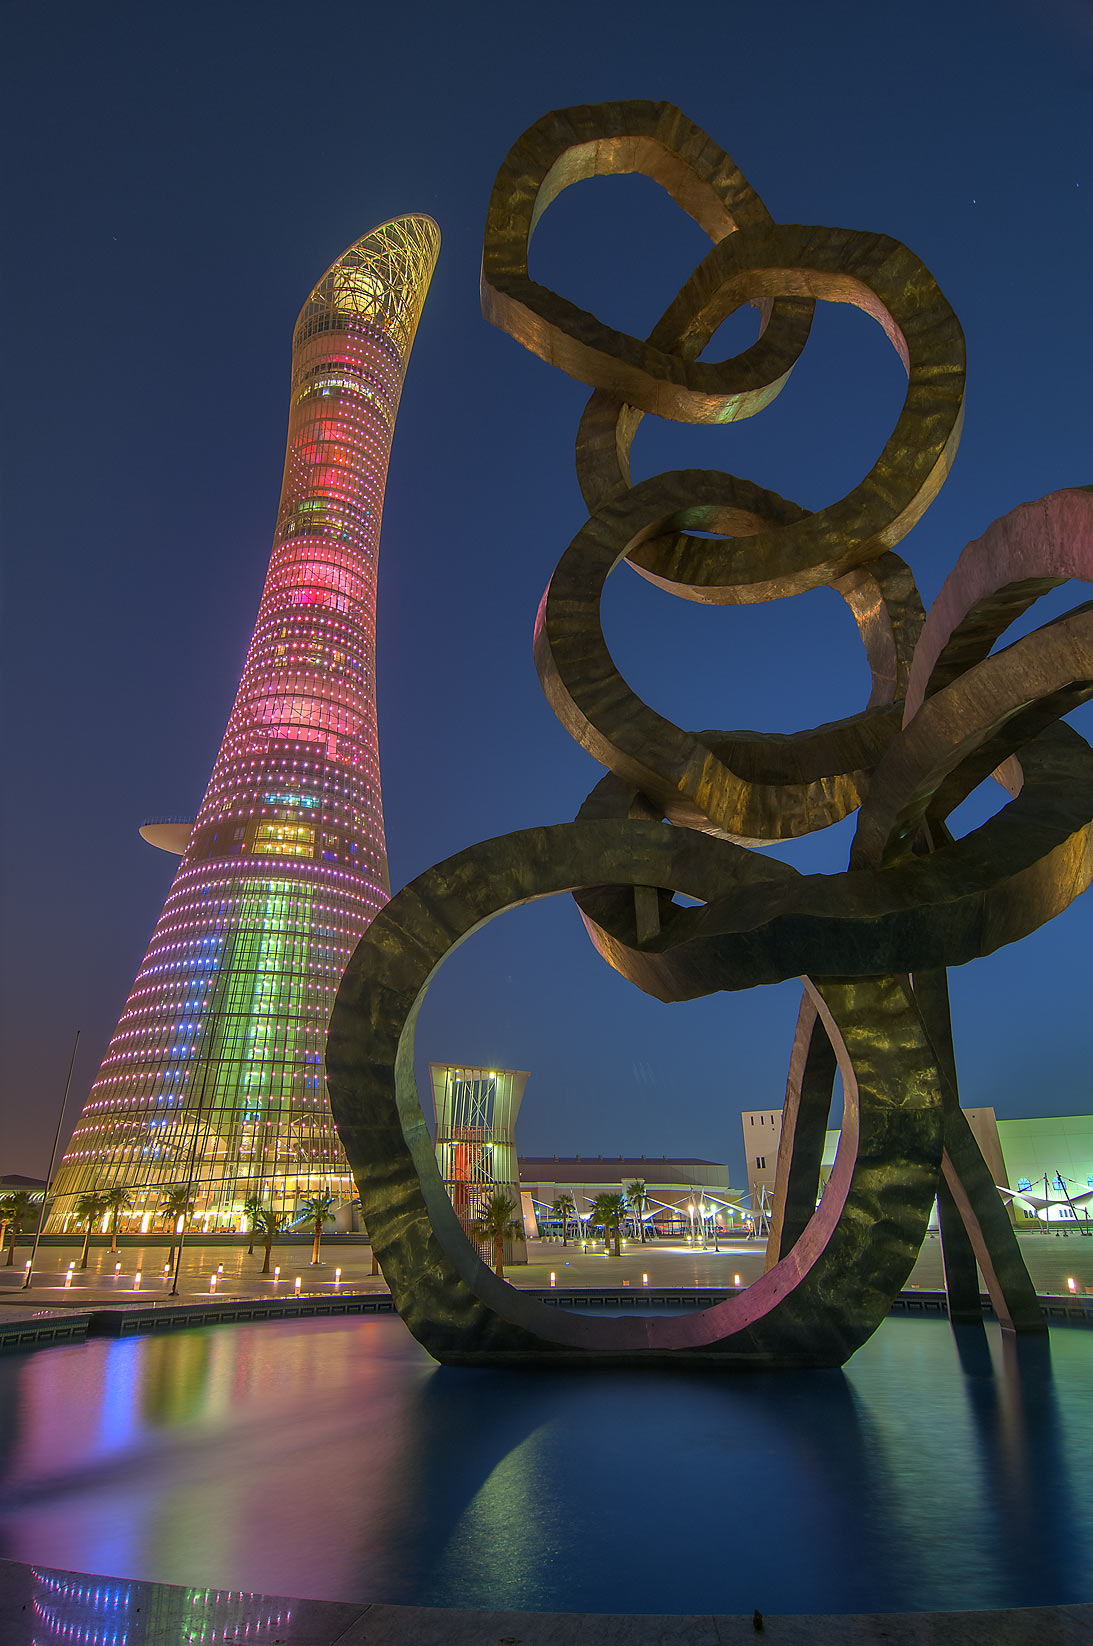 Torch Hotel and Olympic rings sculpture in Aspire Zone at evening. Doha, Qatar